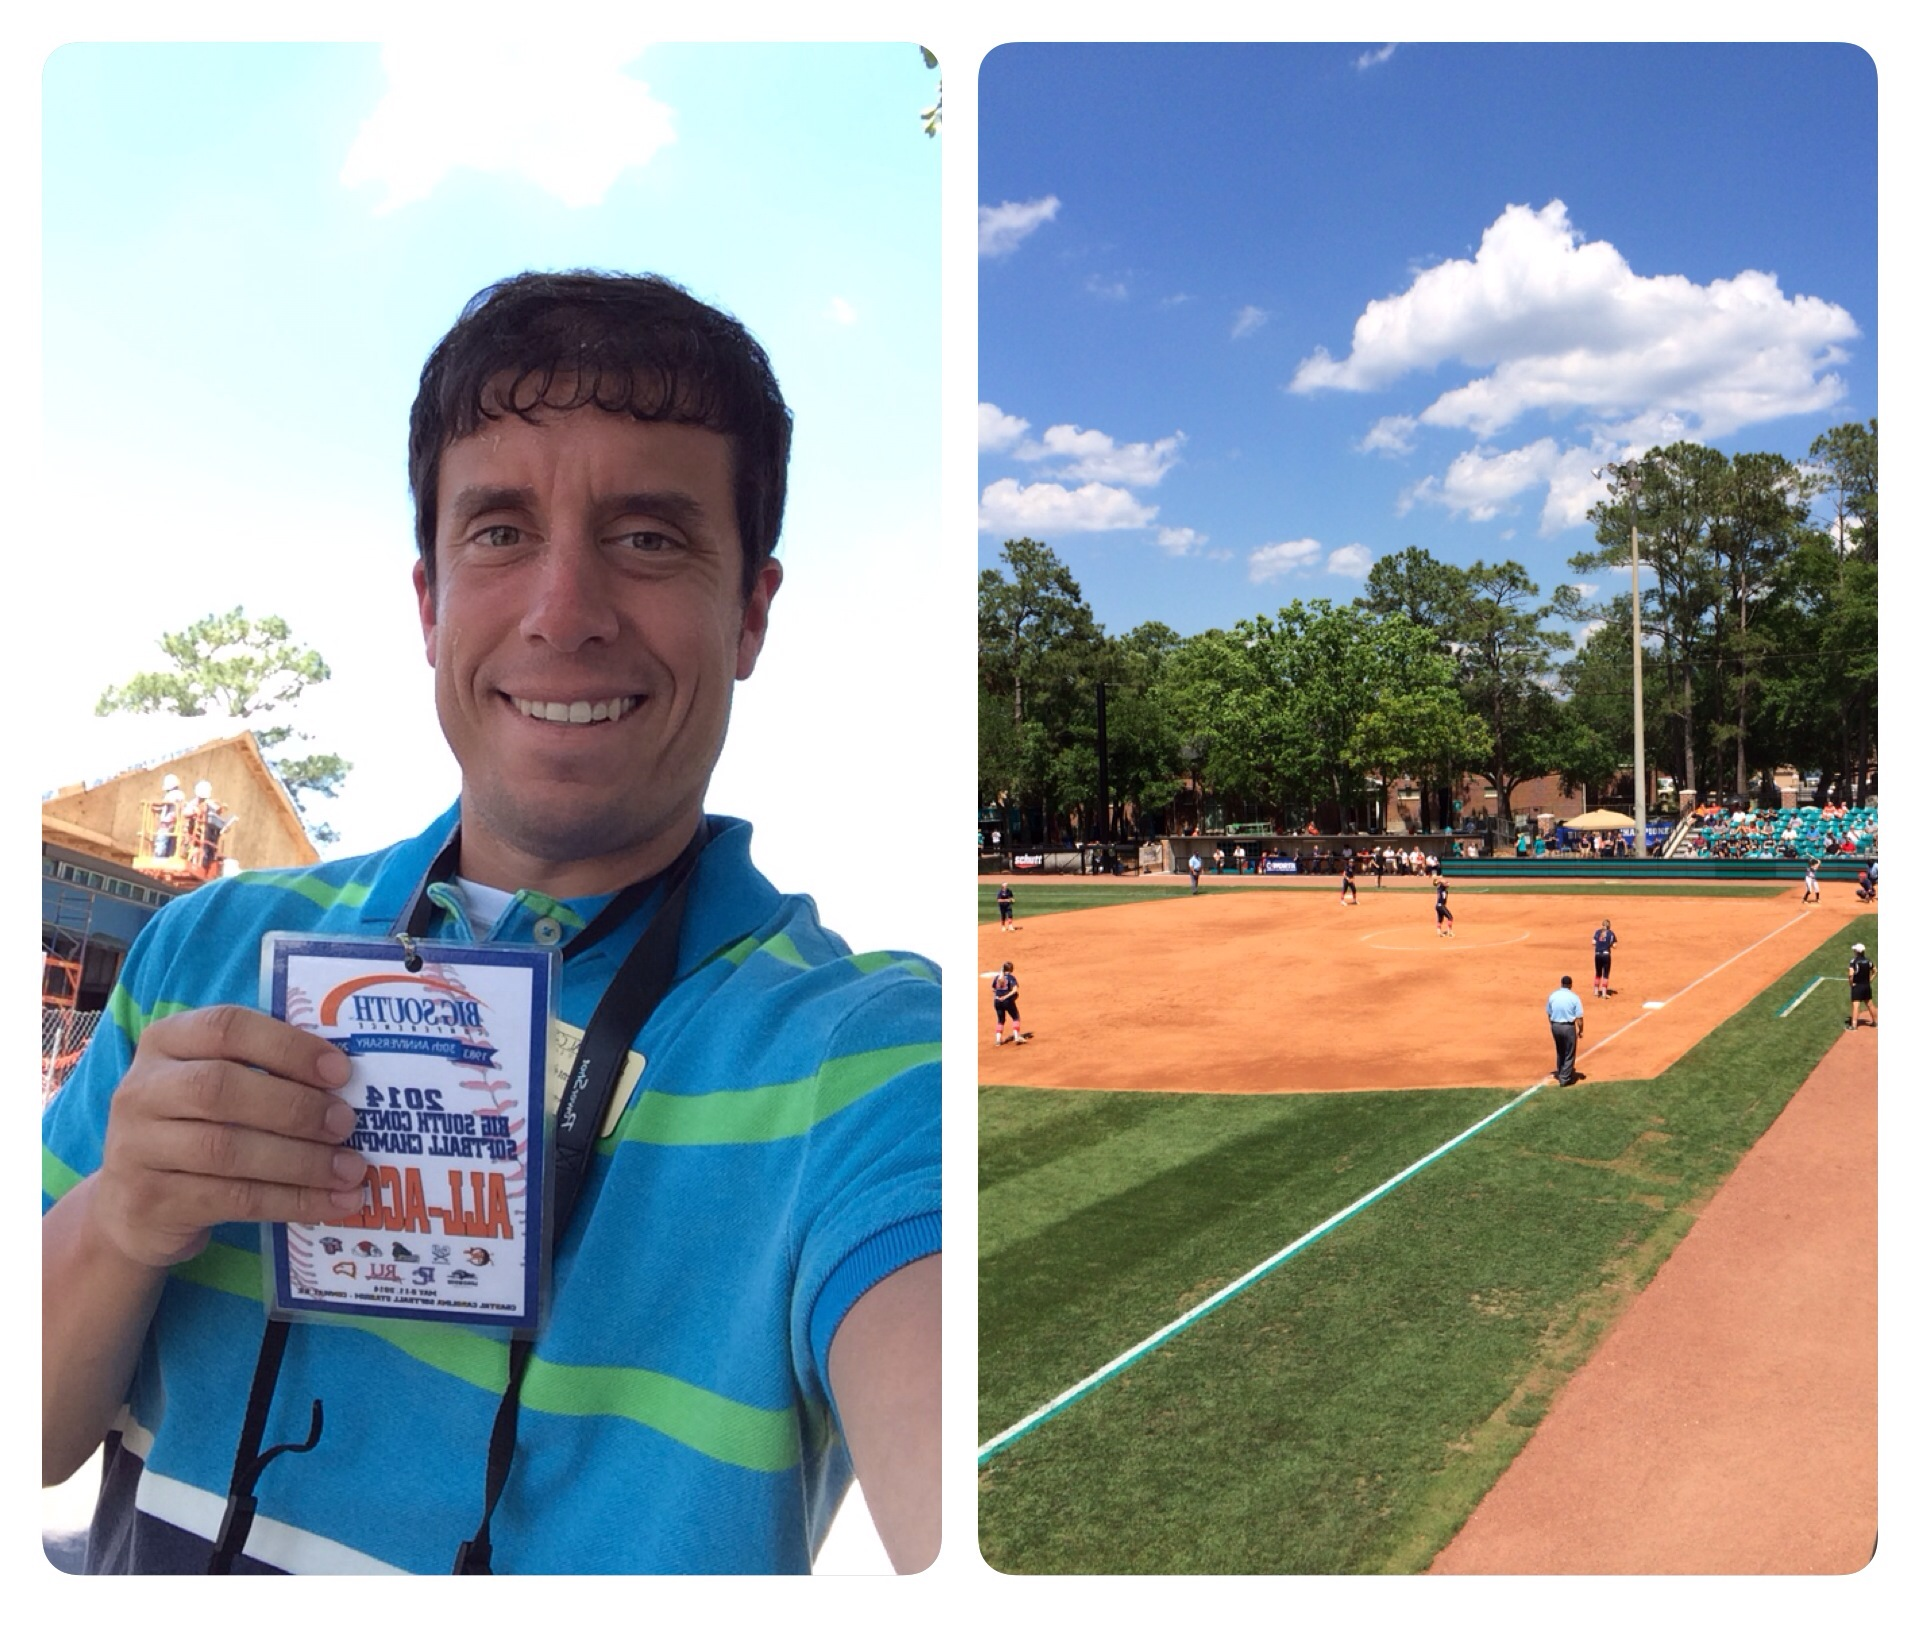 I had a great time attending the softball tournament and seeing how another athletic department does things.